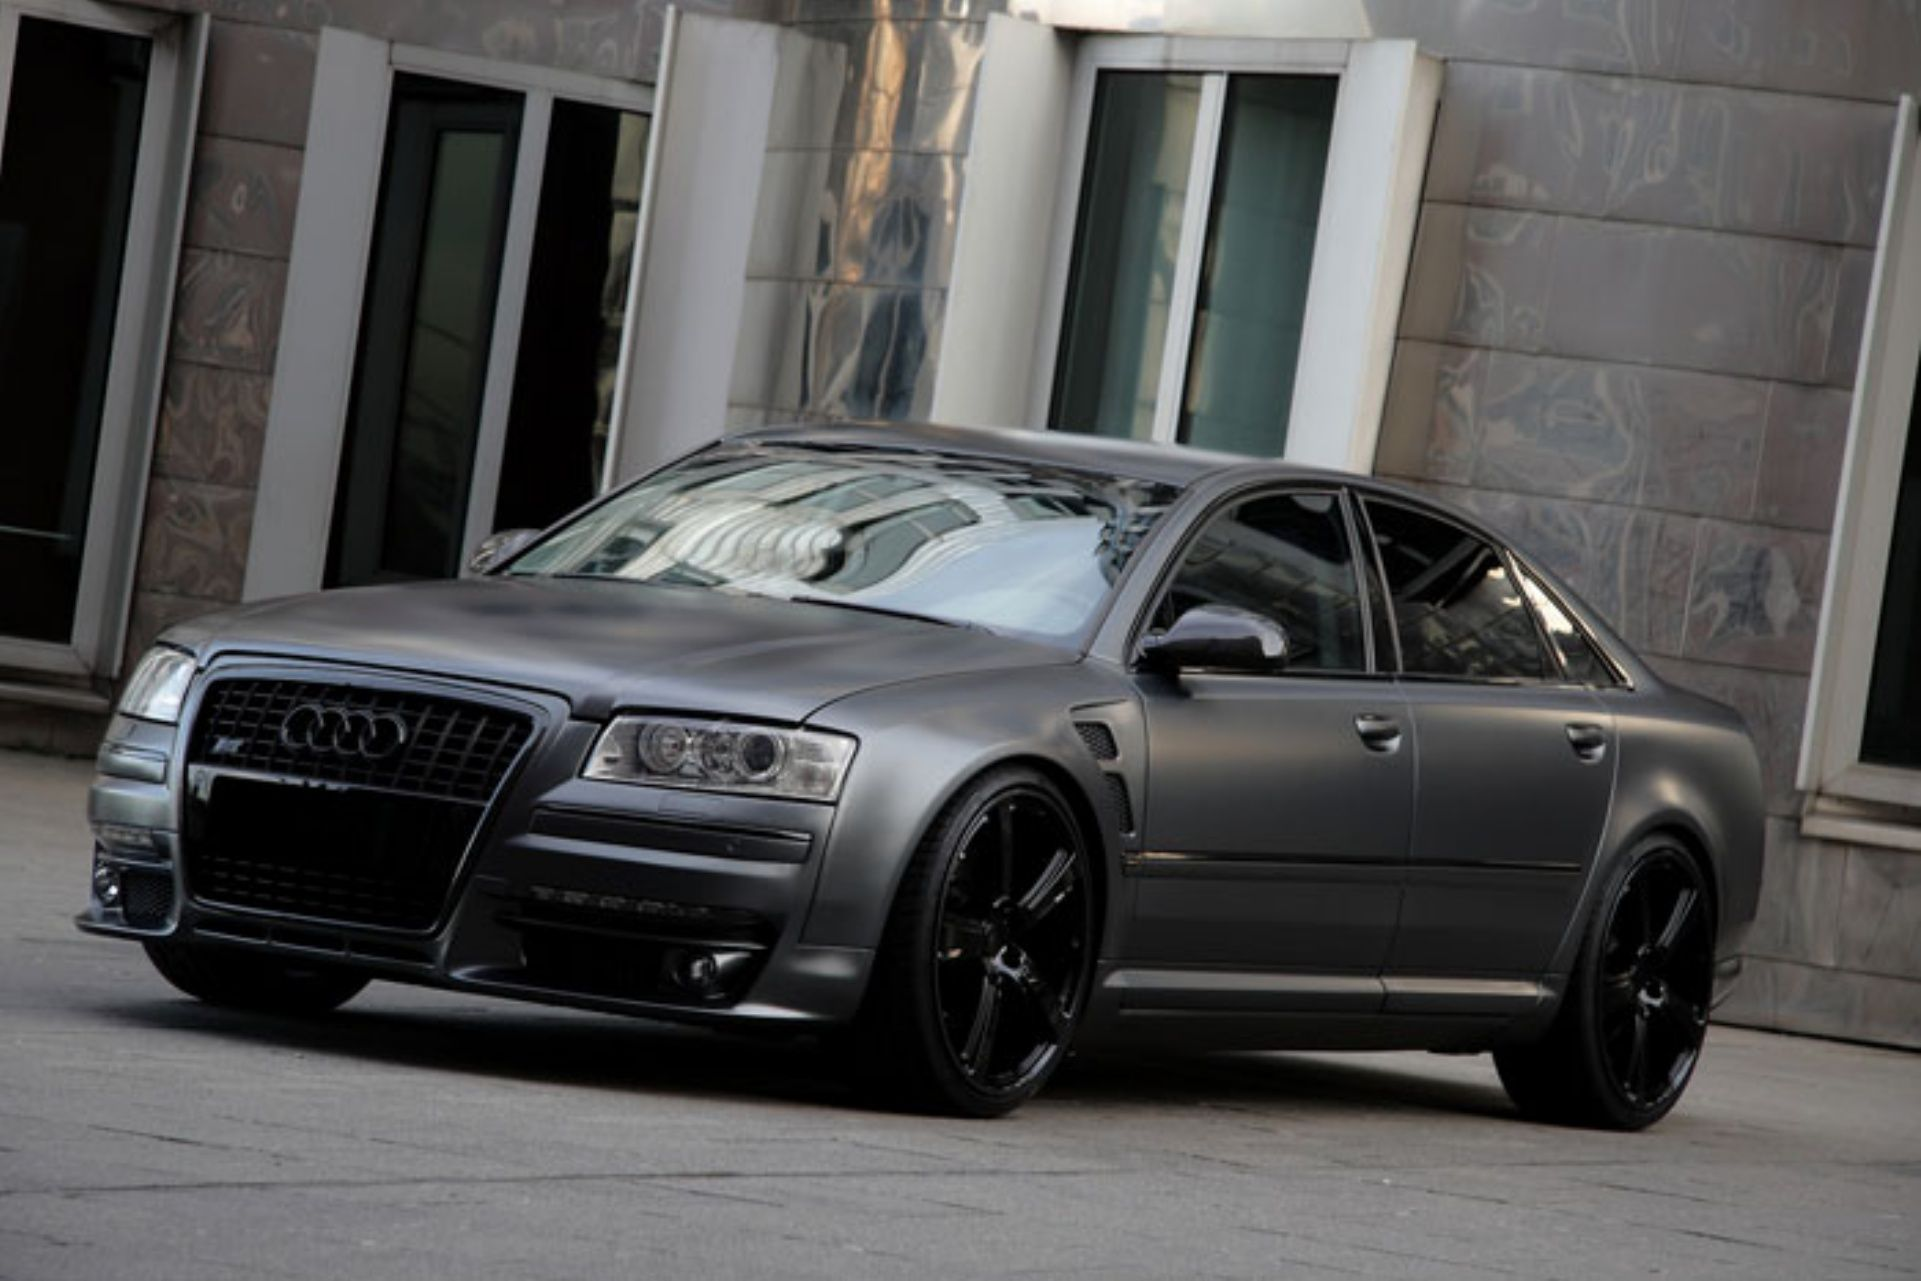 Audi S8 Wallpapers, Adorable HDQ Backgrounds of Audi S8, 36 Audi